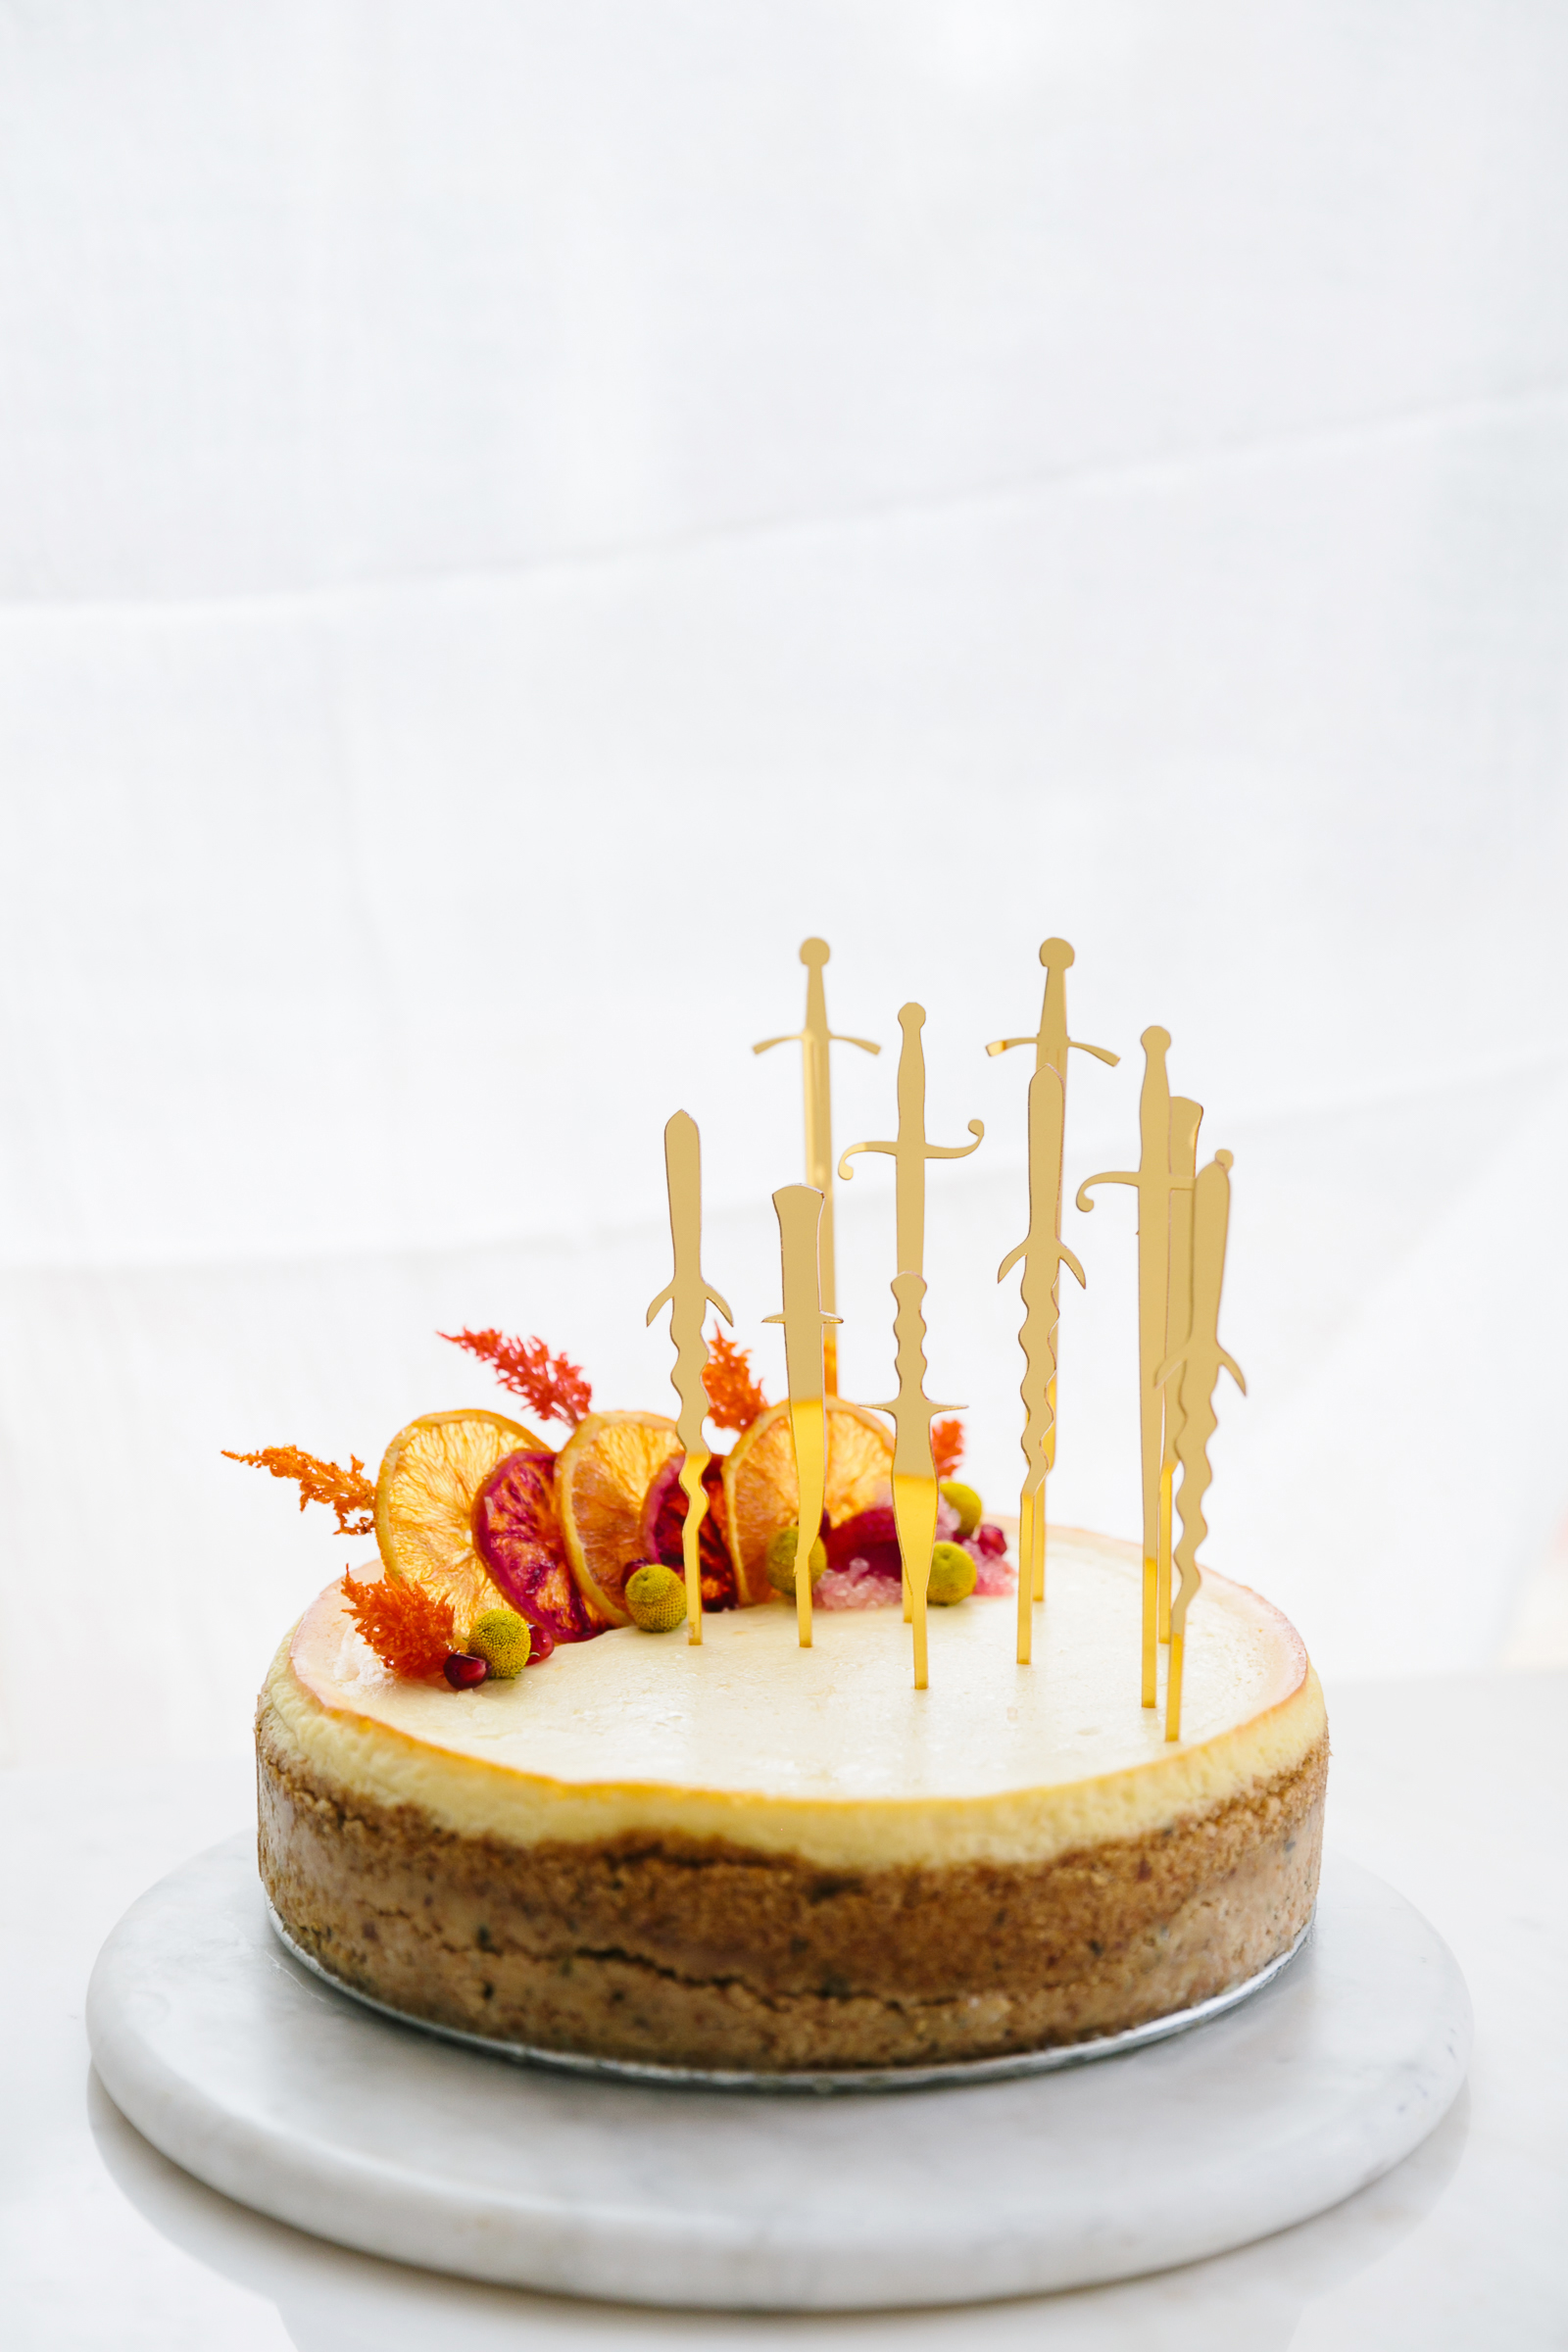 romeo and juliet valentines day party cheesecake decorated with gold knives and orange slices